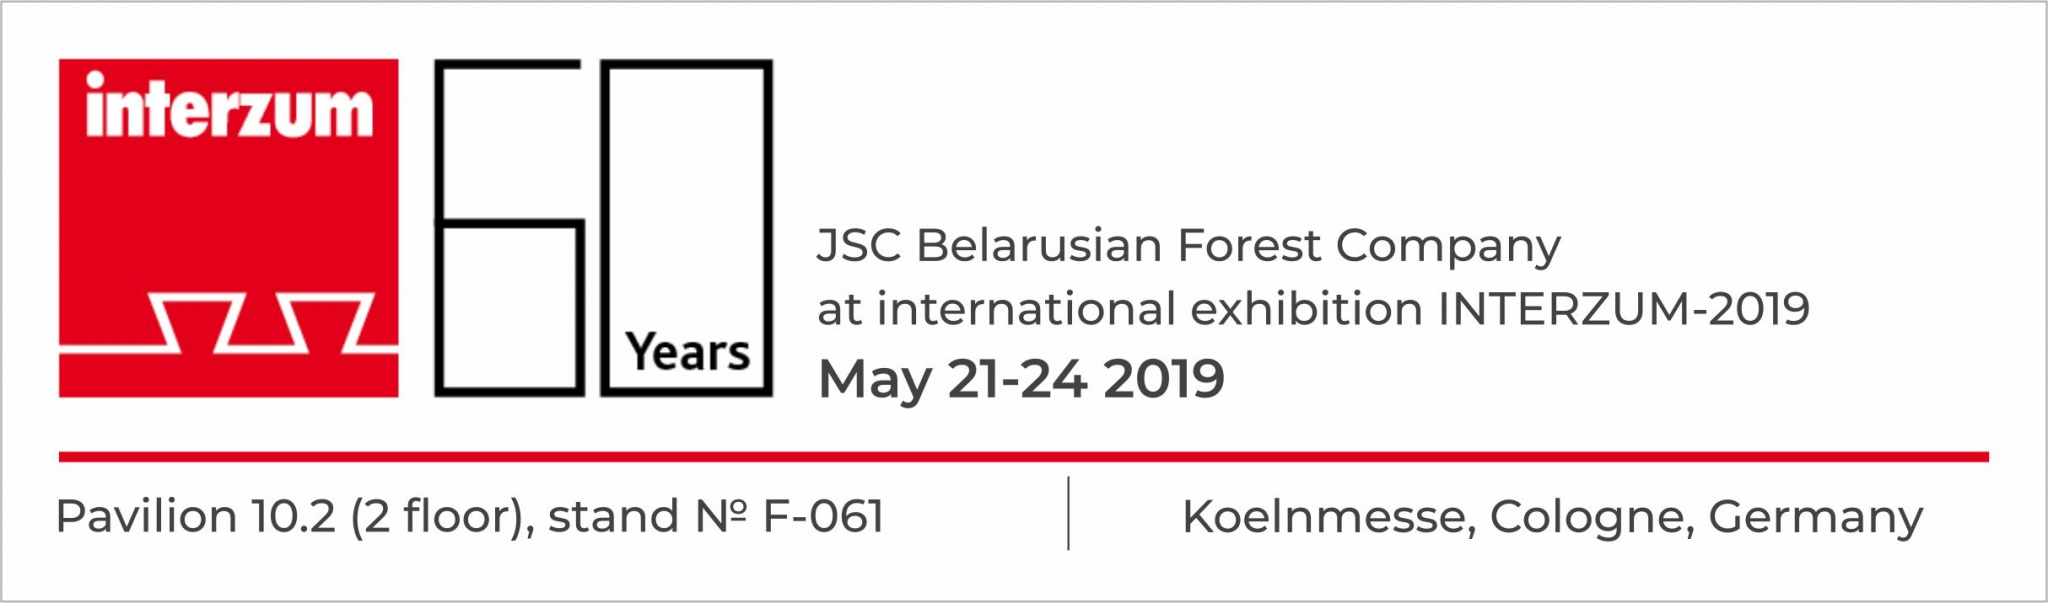 JSC Belarusian Forest Company at Interzum-2019 in Germany